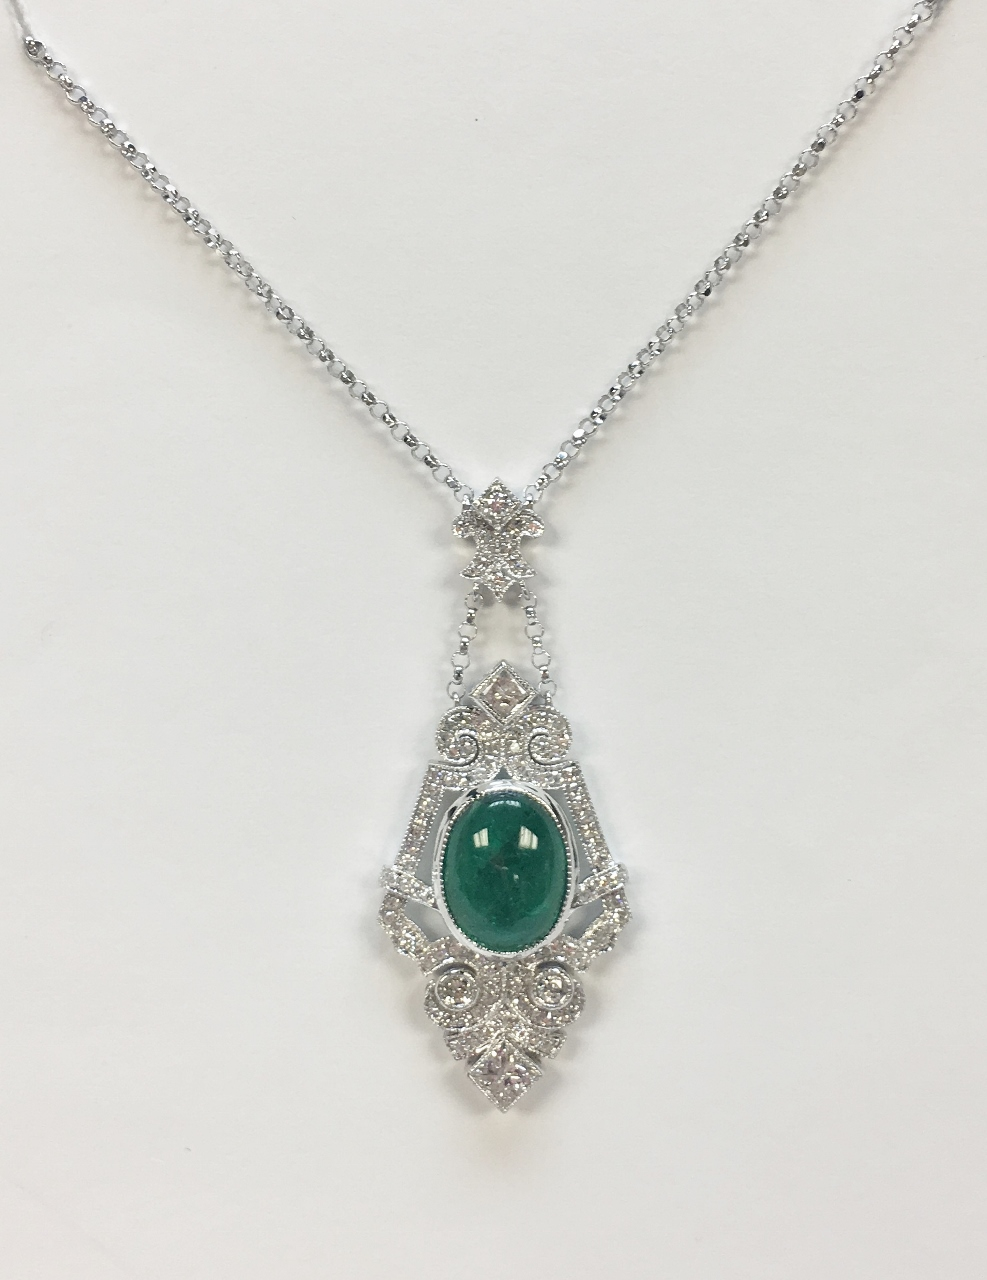 18K White Gold Antique Style 3.80 Carats Emerald Necklace